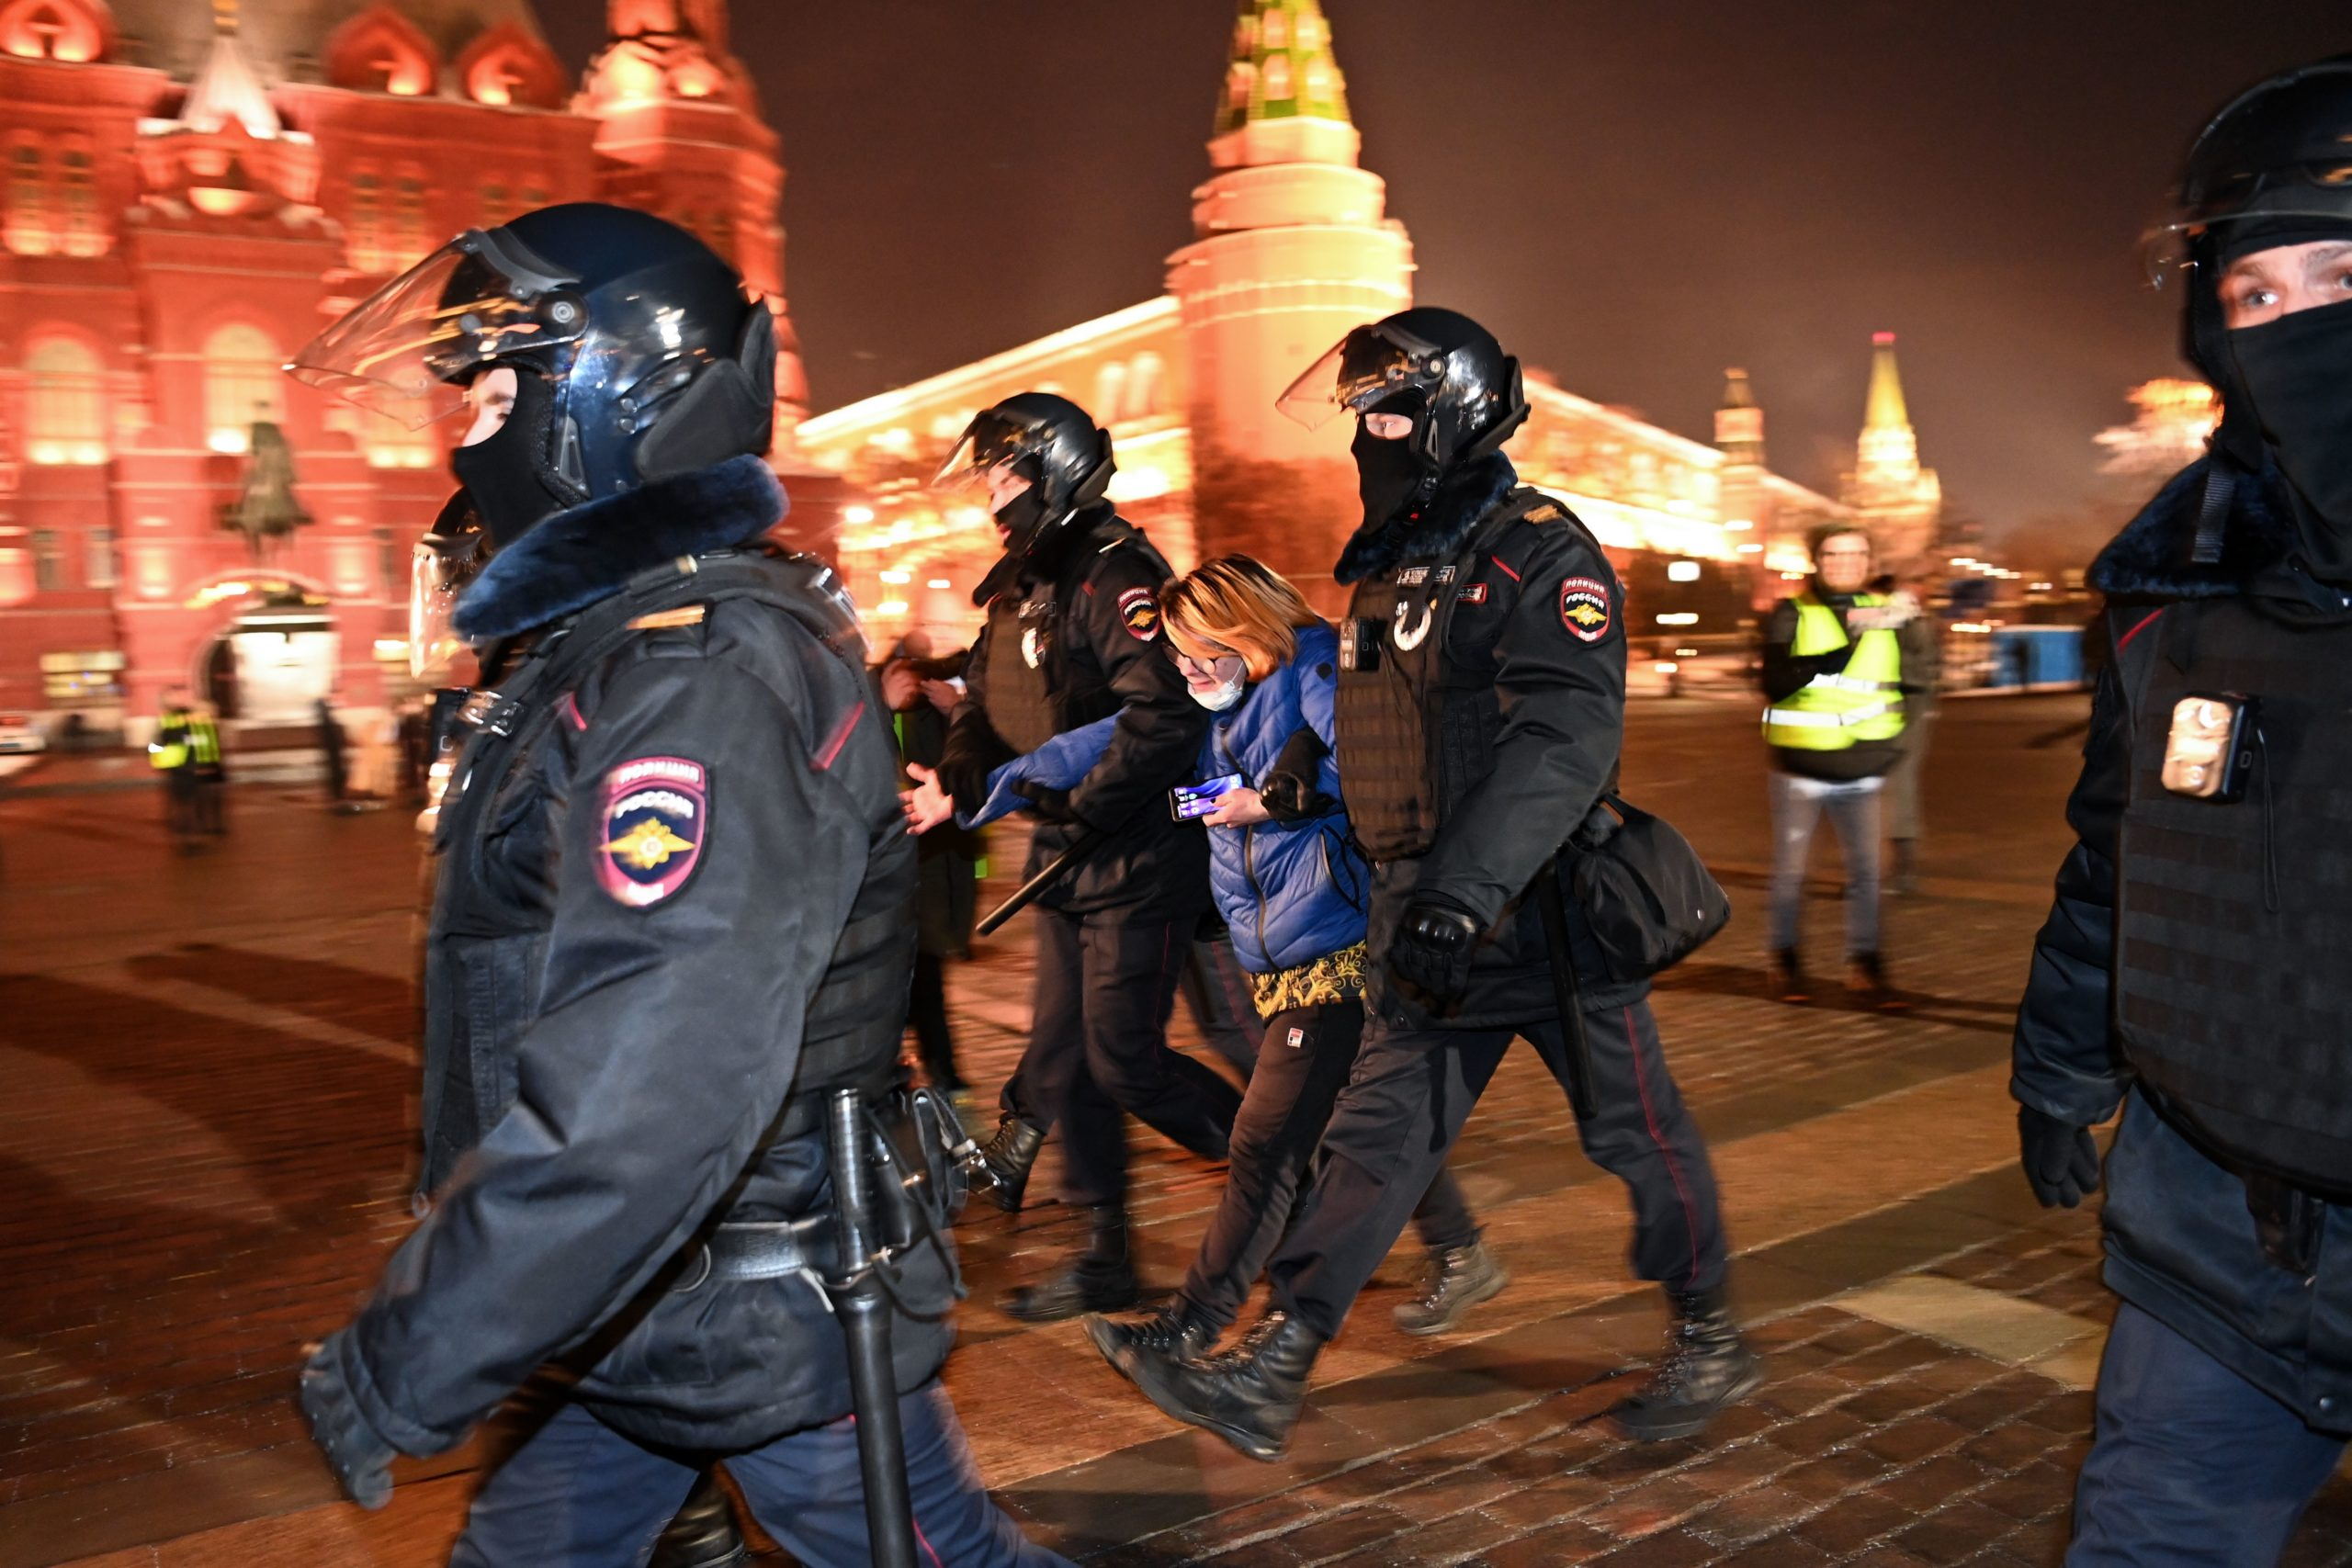 Police officers detain a woman at Moscow's Manezhnaya Square on February 2, 2021. - A Moscow court on February 2 granted a prosecutors' request for Kremlin critic Alexei Navalny to serve prison time for violating the terms of his parole. Judge Natalya Repnikova ordered a suspended three-and-a-half-year sentence Navalny received in 2014 to be changed to time in a penal colony, an AFP journalist at the courthouse said. Repnikova said time Navalny previously spent under house arrest in the sentence would count as time served, and, according to his team, that would mean at least two-and-a-half years in prison now. Navalny's Anti-Corruption Fund (FBK) immediately called for supporters to protest in central Moscow. (Photo by Kirill KUDRYAVTSEV / AFP) (Photo by KIRILL KUDRYAVTSEV/AFP via Getty Images)